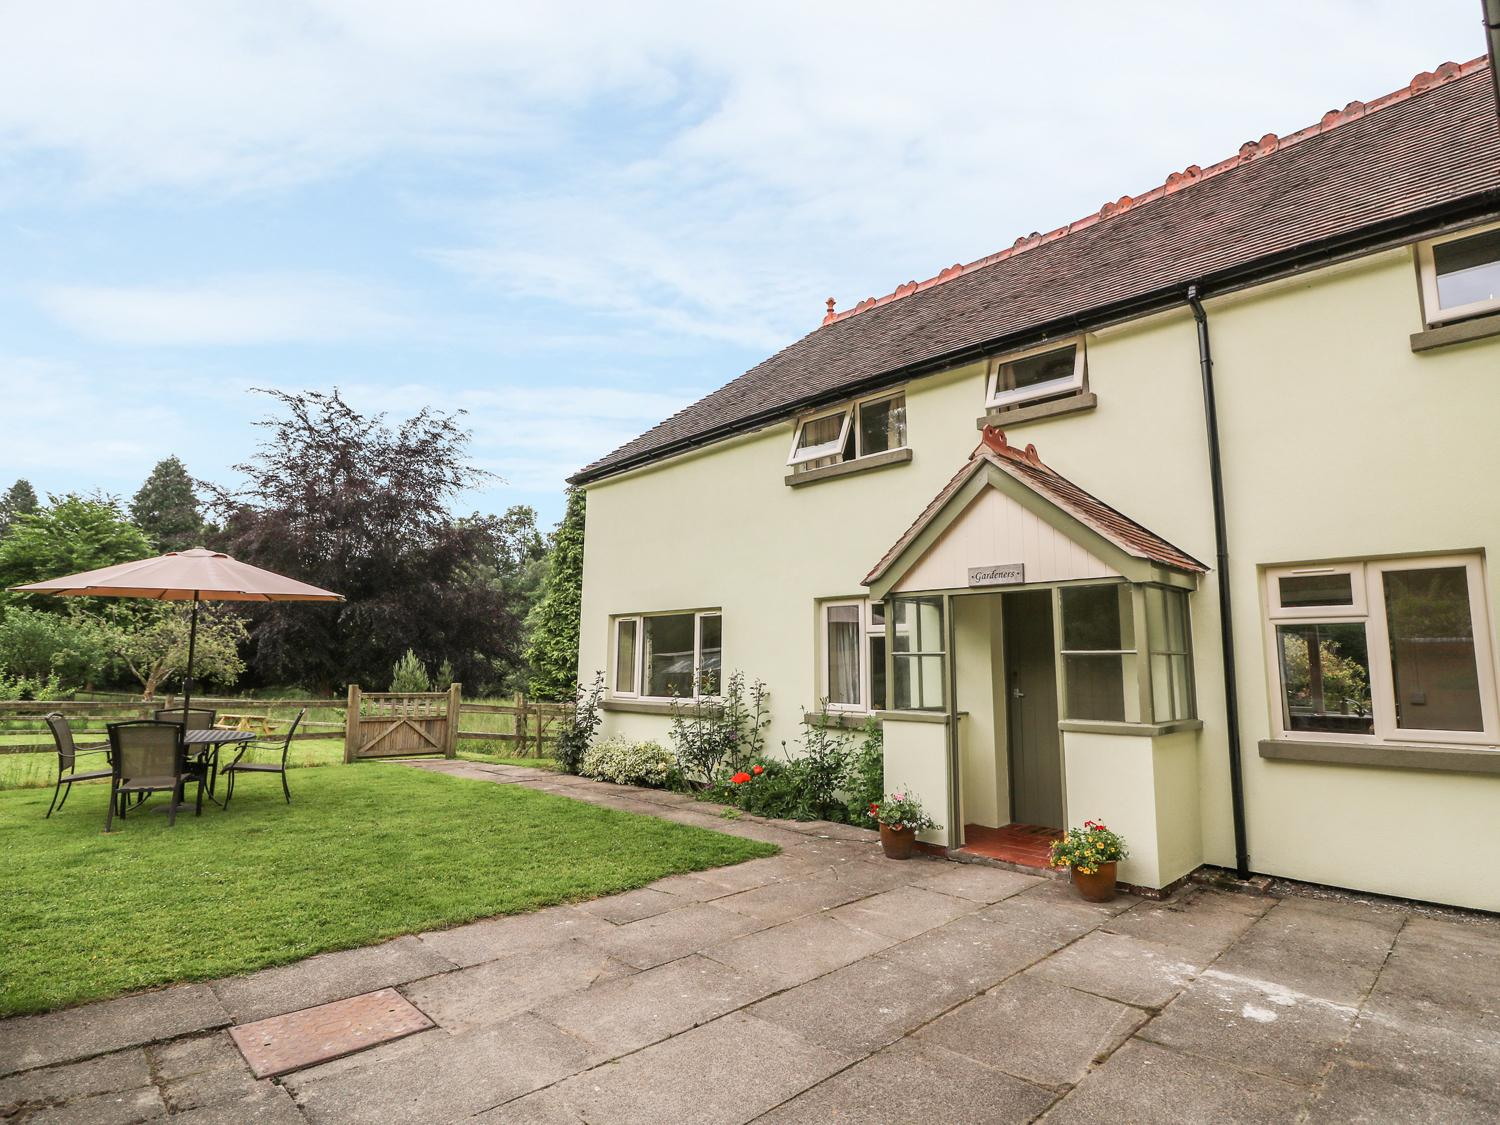 Holiday Cottage Reviews for Gardener's Cottage - Self Catering Property in Llanwrthwl, Powys